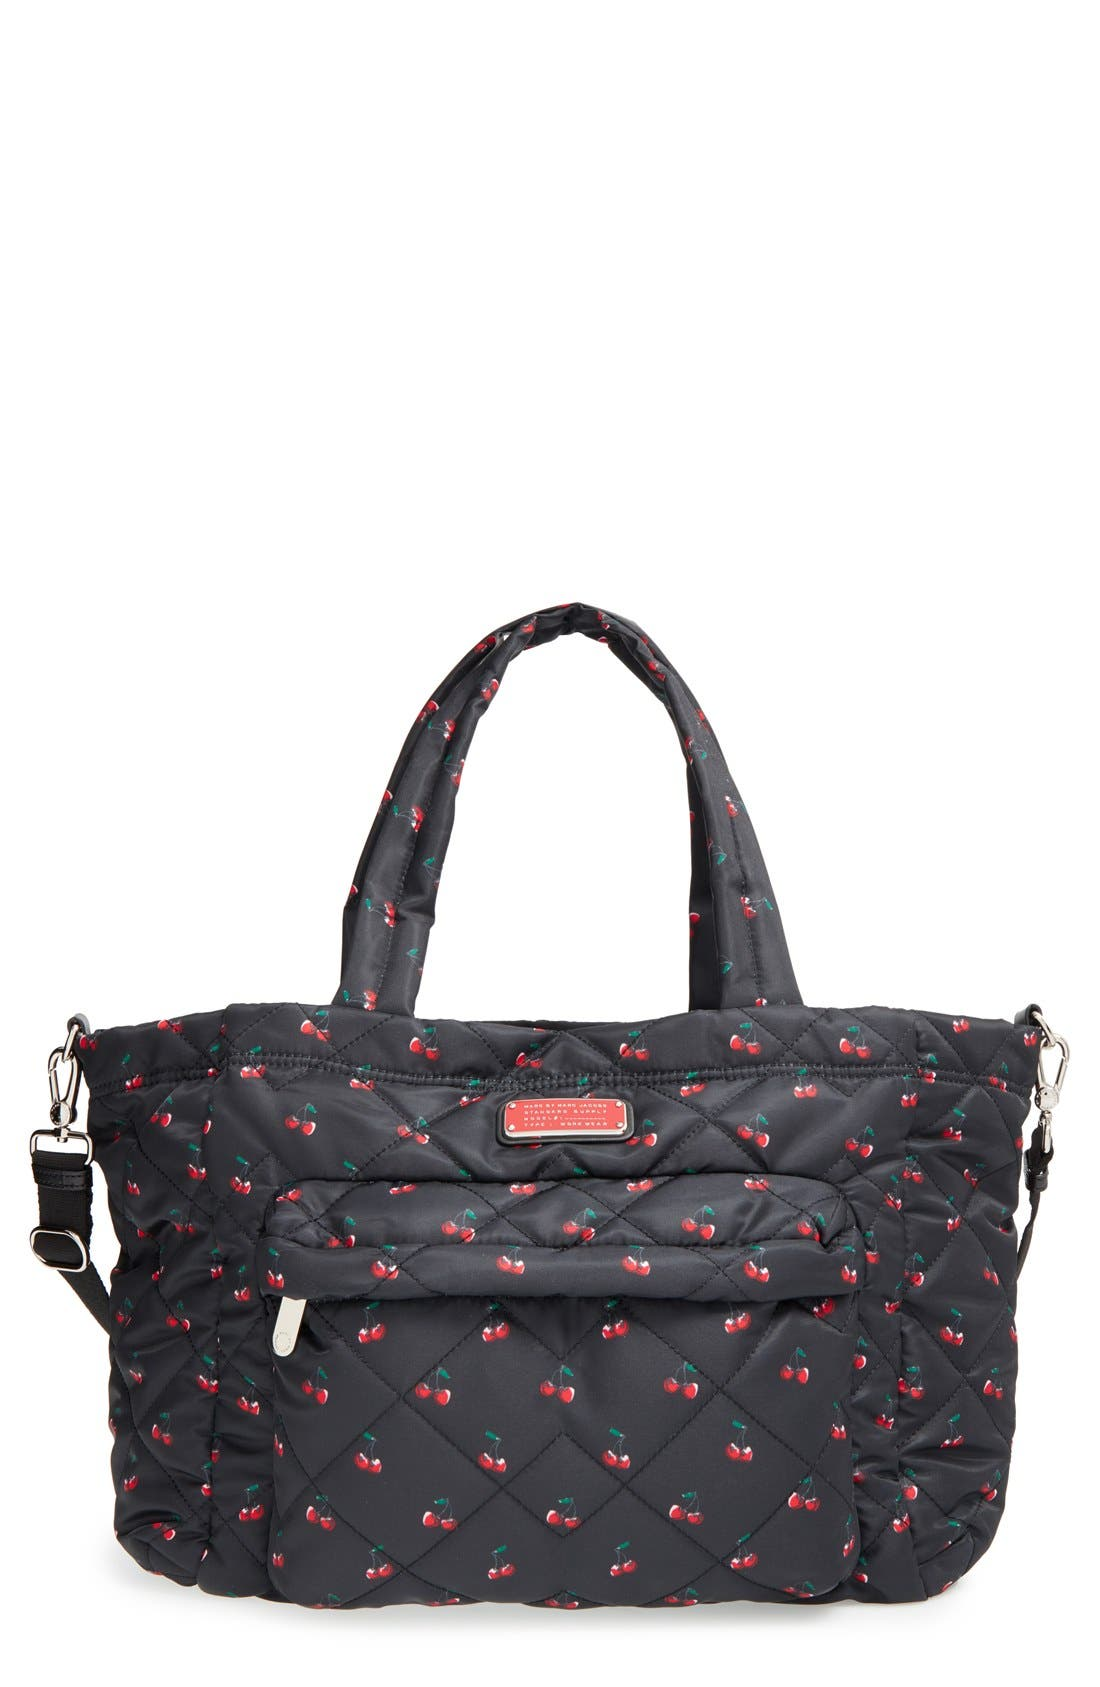 MARC JACOBS,                             MARC BY MARC JACOBS 'Crosby - Elizababy' Quilted Fruit Print Diaper Bag,                             Main thumbnail 1, color,                             001